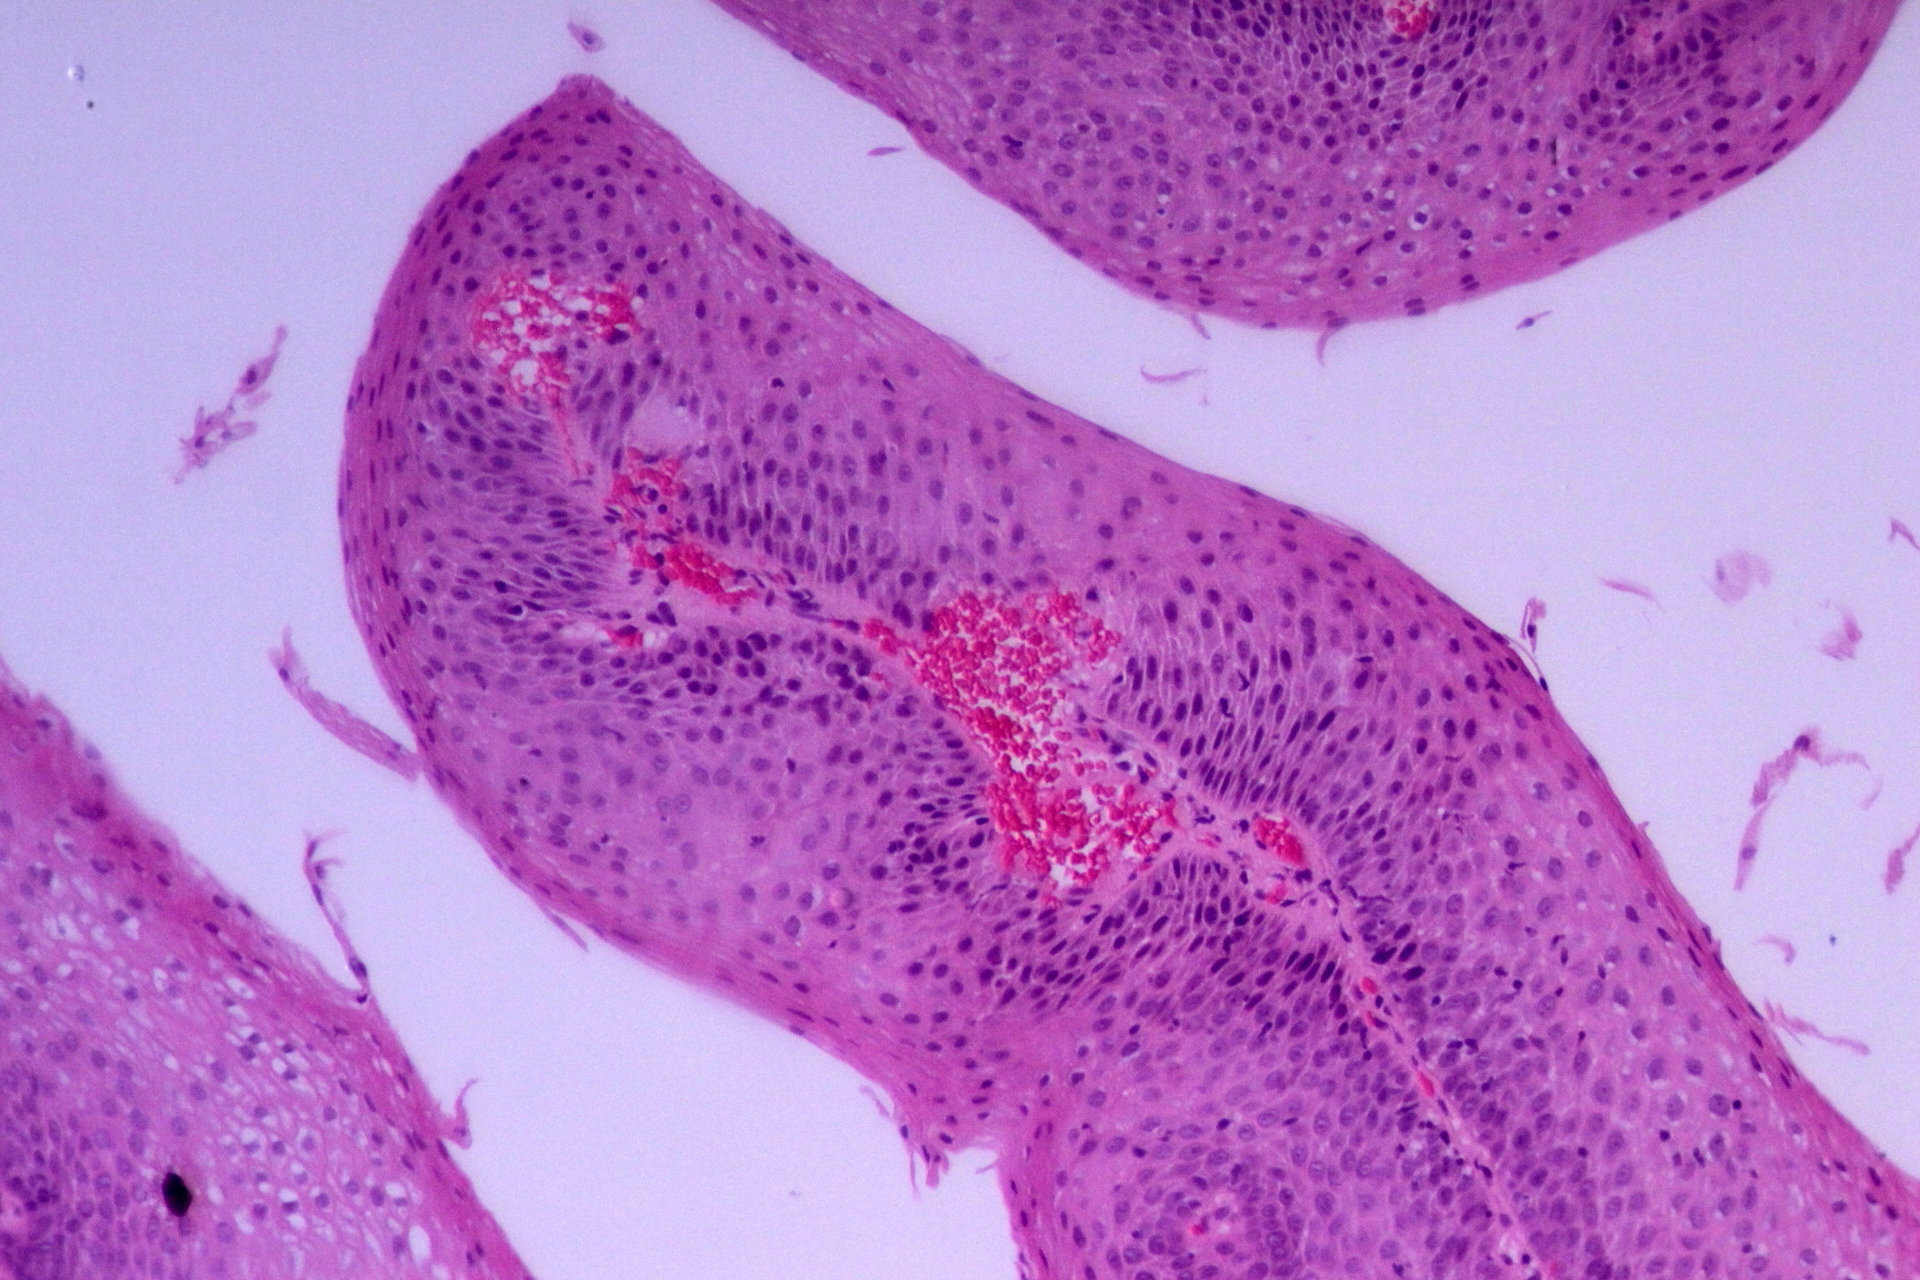 esophageal squamous papilloma histology